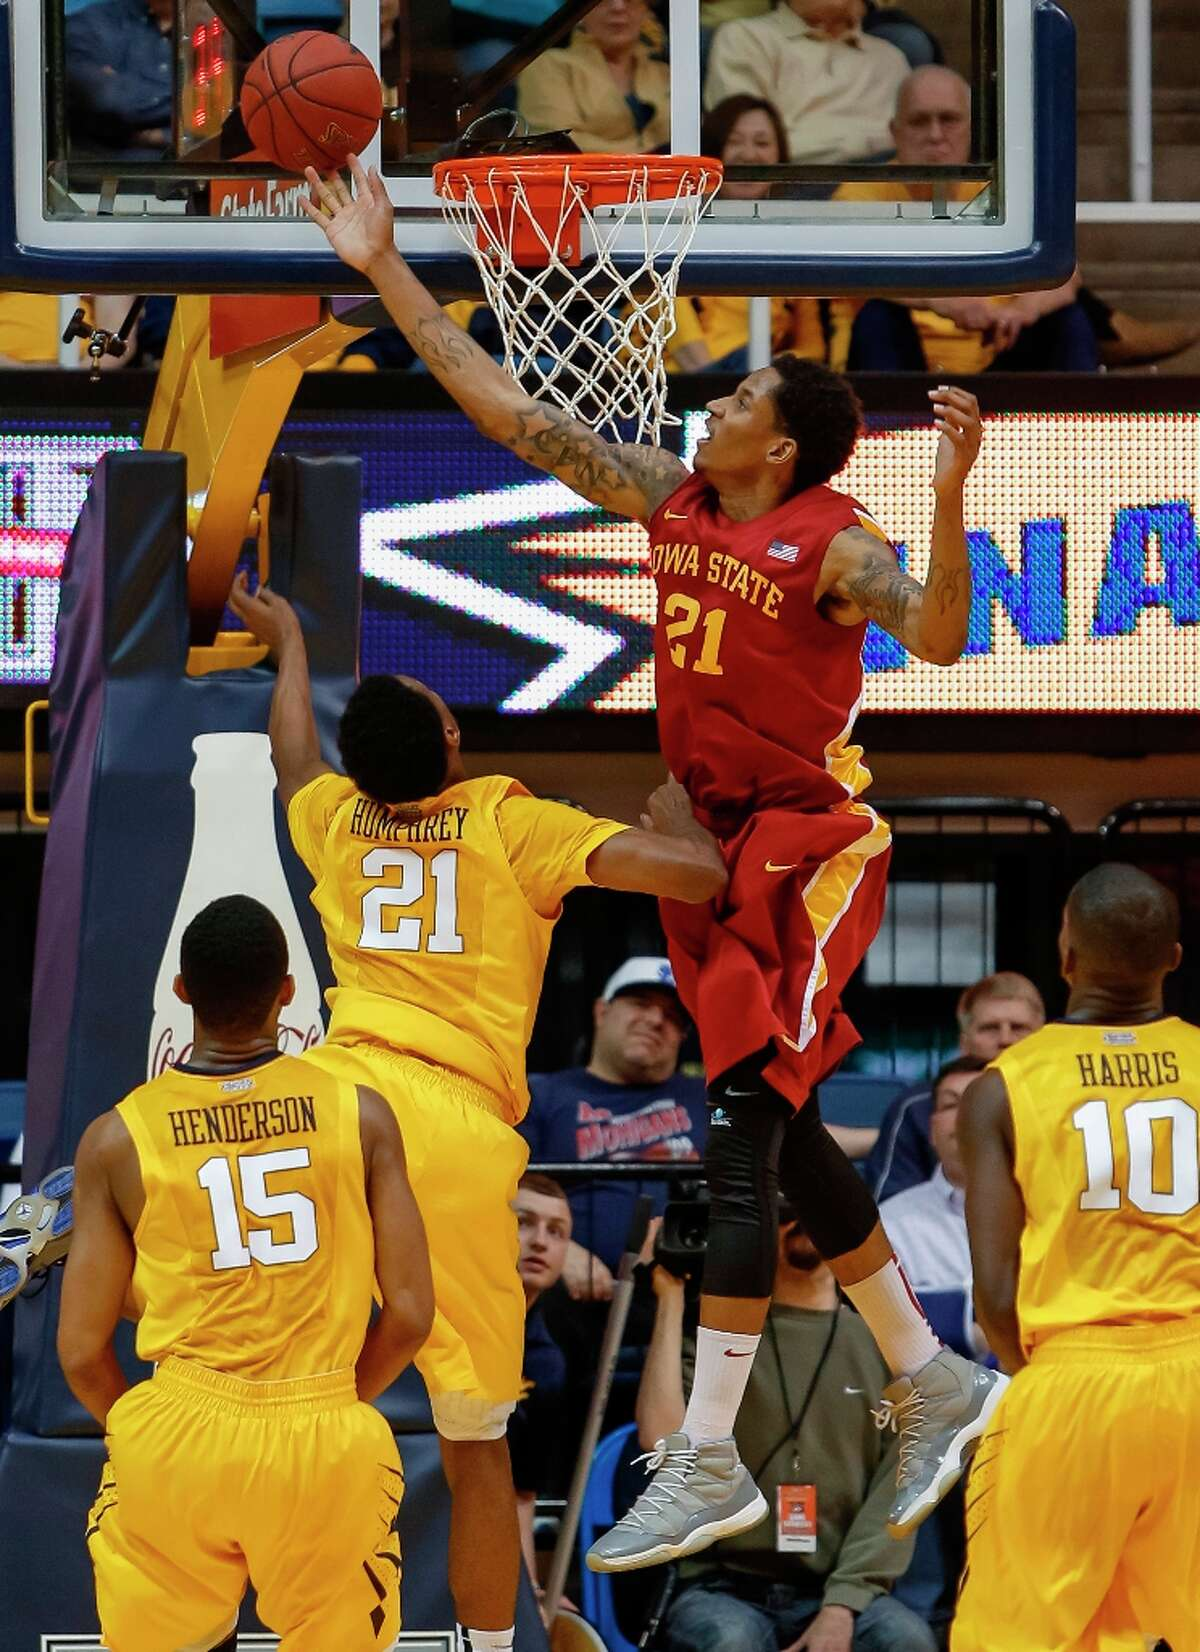 Who's hot - Iowa State F Will Clyburn: Notched 27 points and 10 rebounds to lead the Cyclones' victory over West Virginia. It was his fourth 20-10 game of the season. He's averaging 23.5 points and 7.5 rebounds in his last two games - both ISU victories.